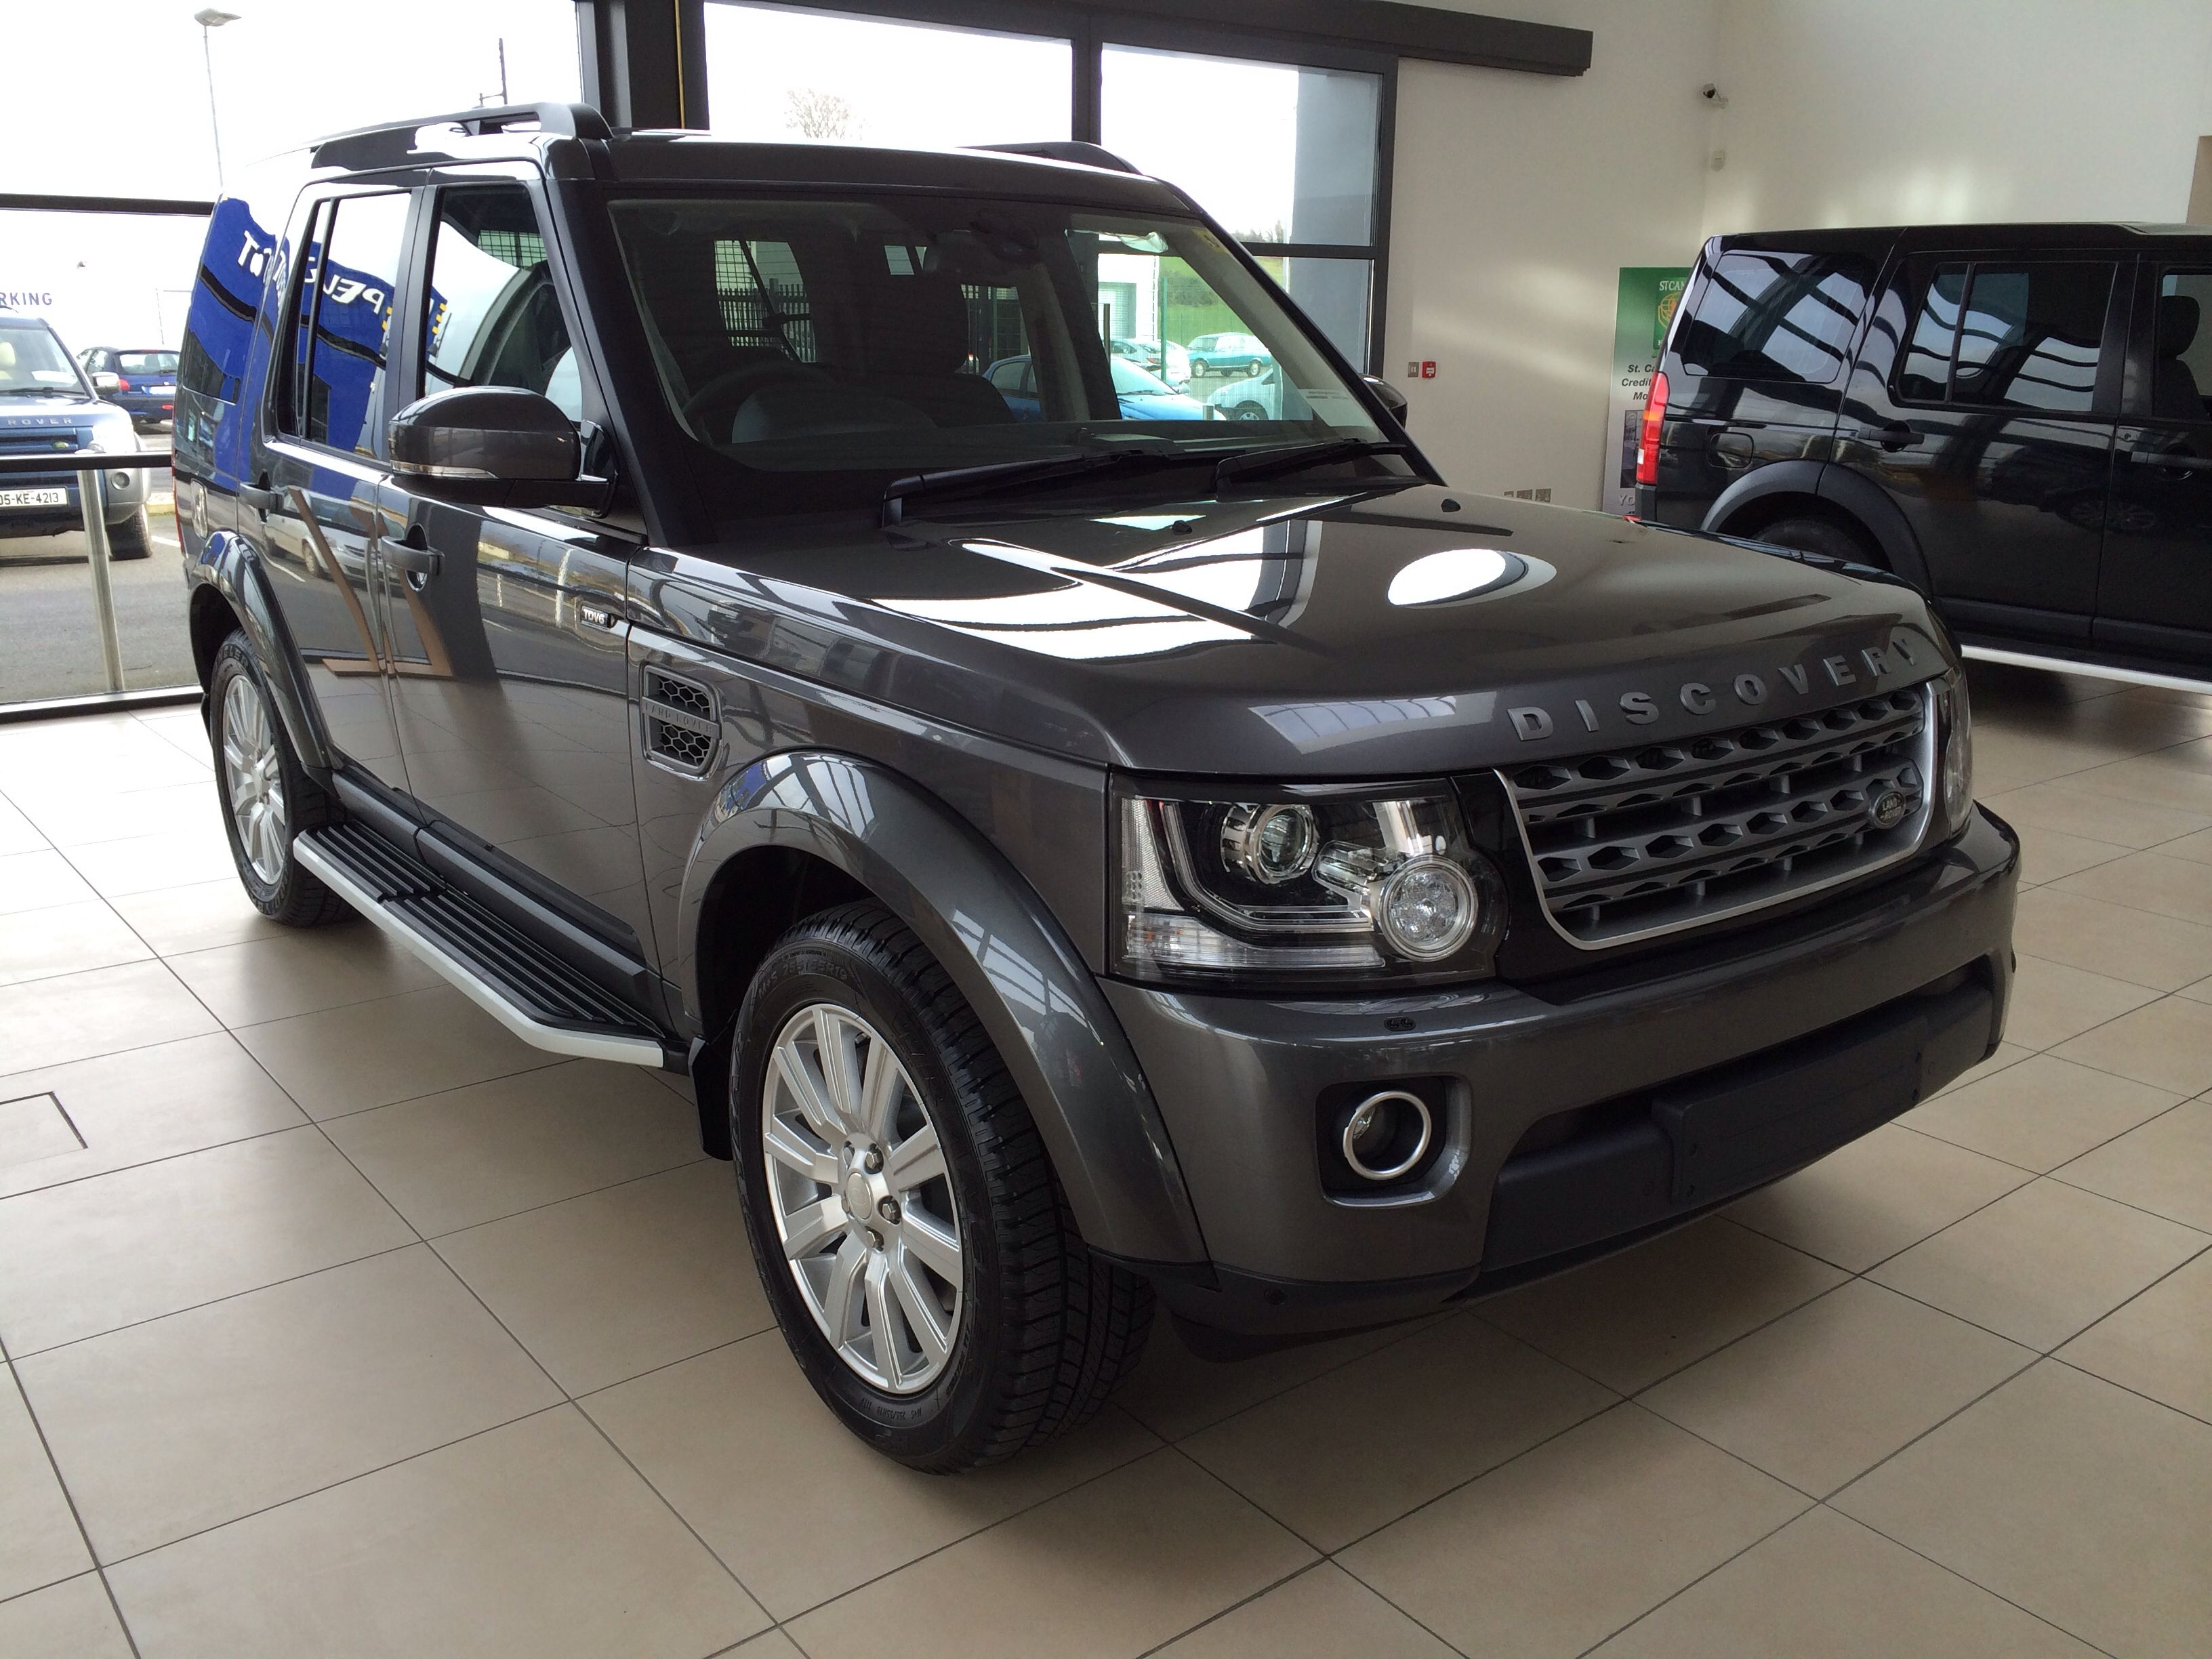 landrover pin sale land for anyone landroverpalmbeach whippss chablis rover